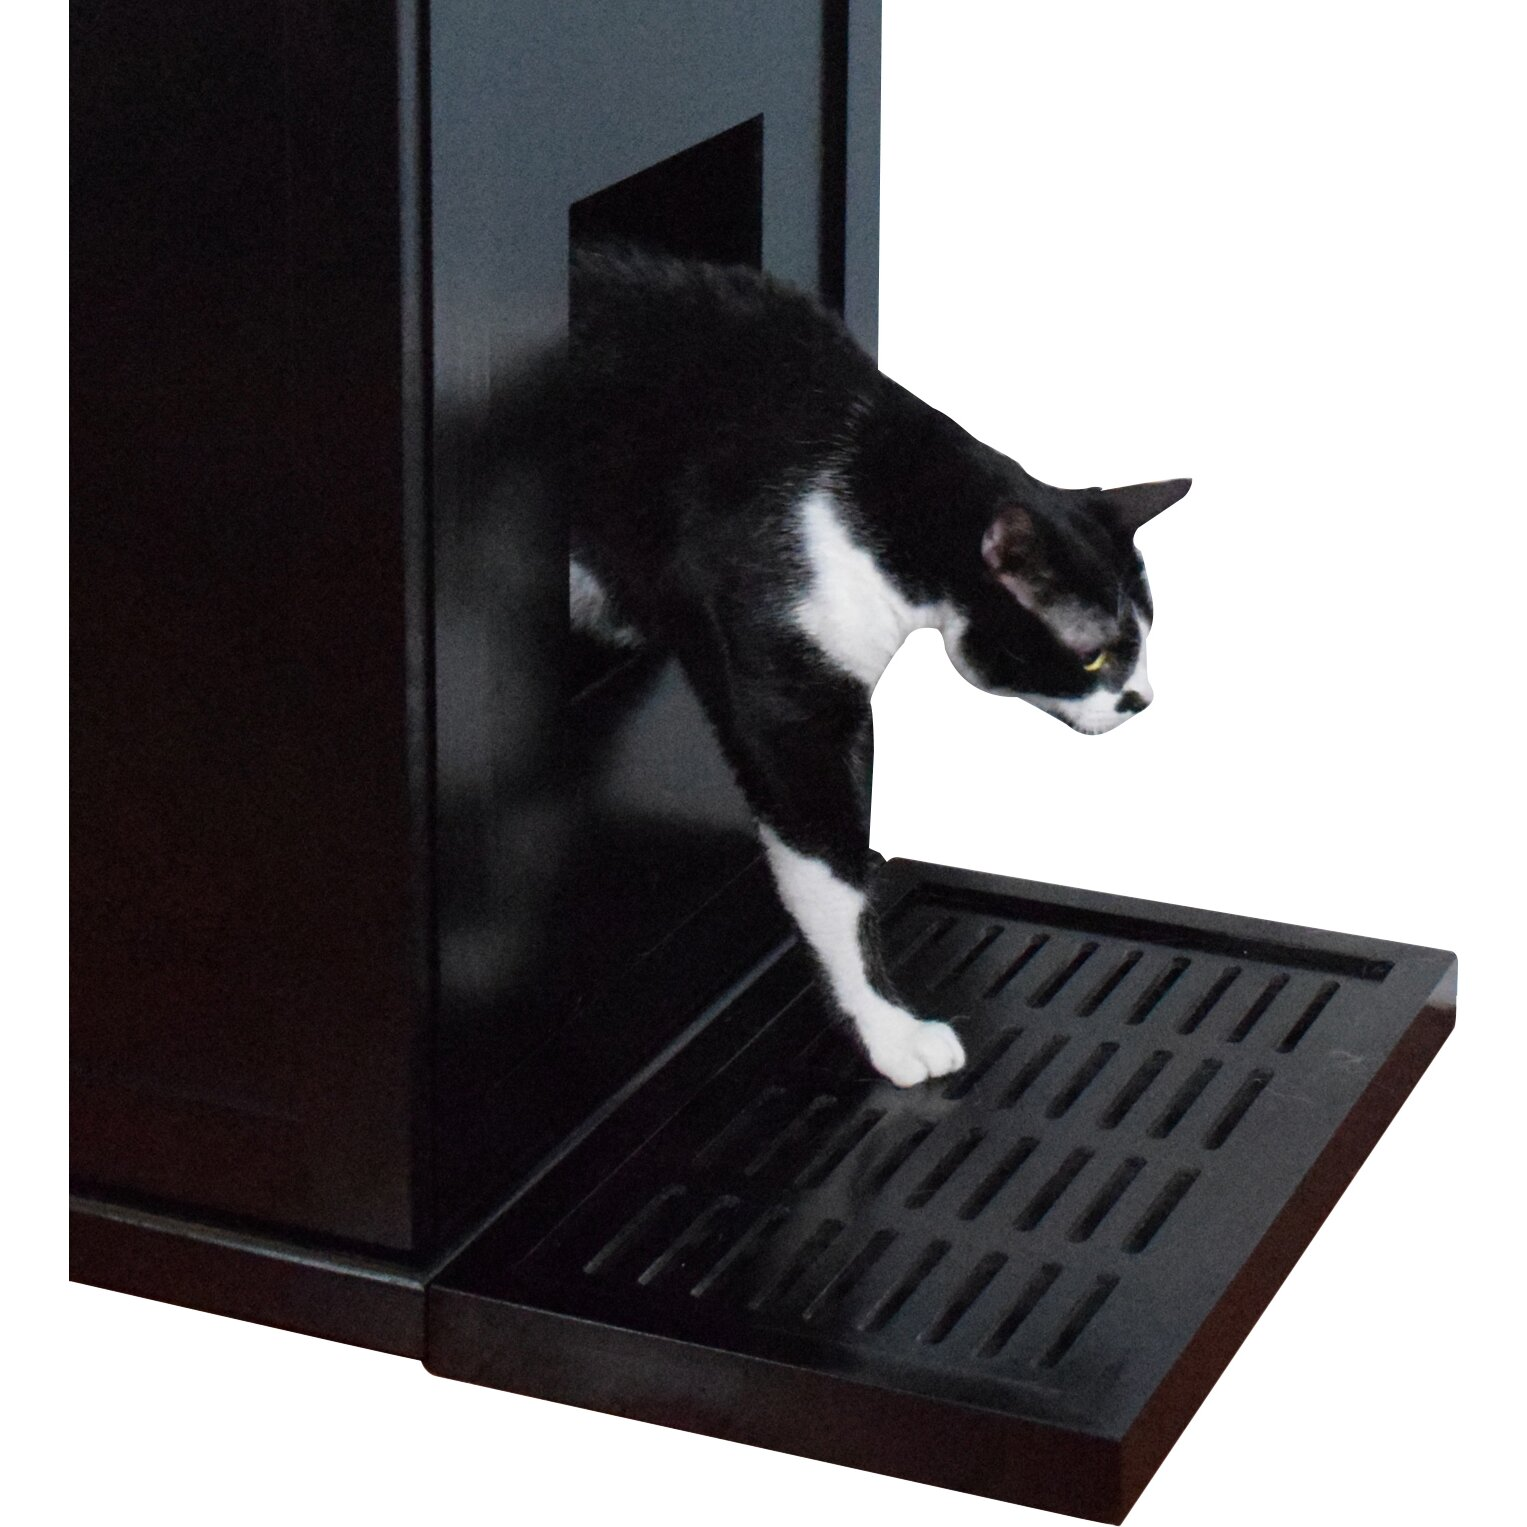 the refined feline litter catch for the refined litter box enclosure arena kitty litter box